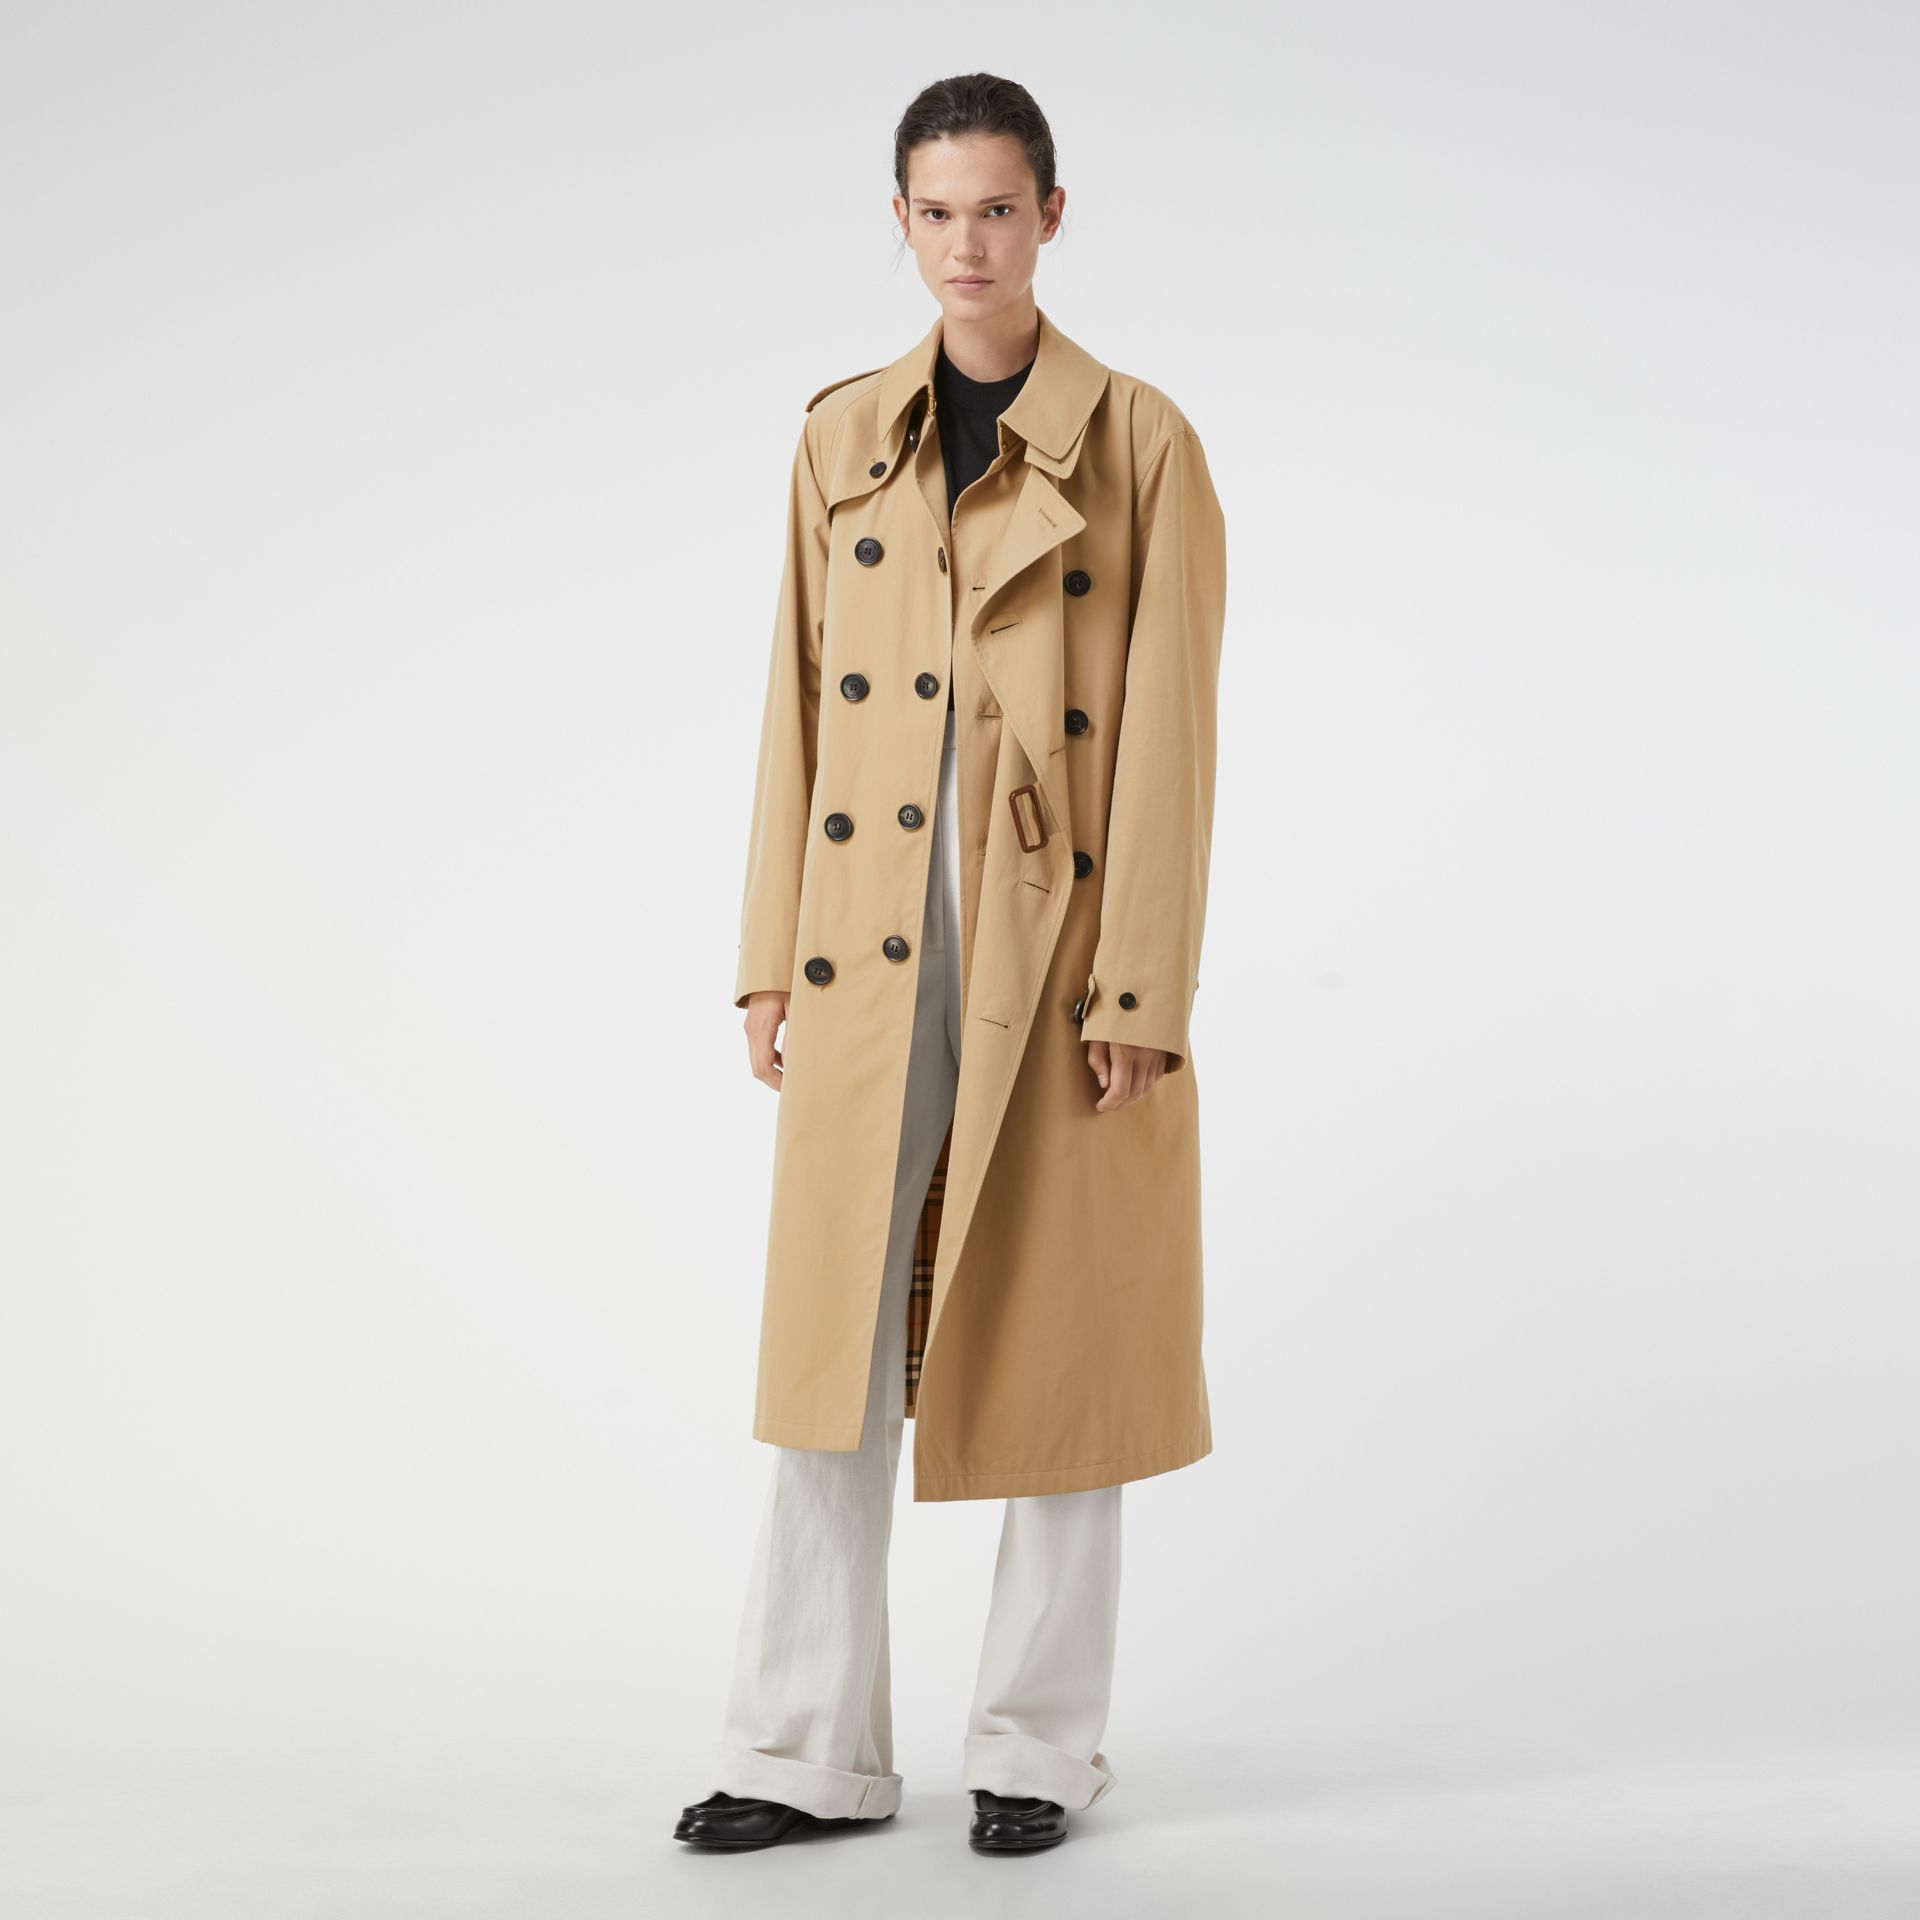 Gosha x Burberry Reconstructed Trench Coat in Honey | Burberry - gallery image 8